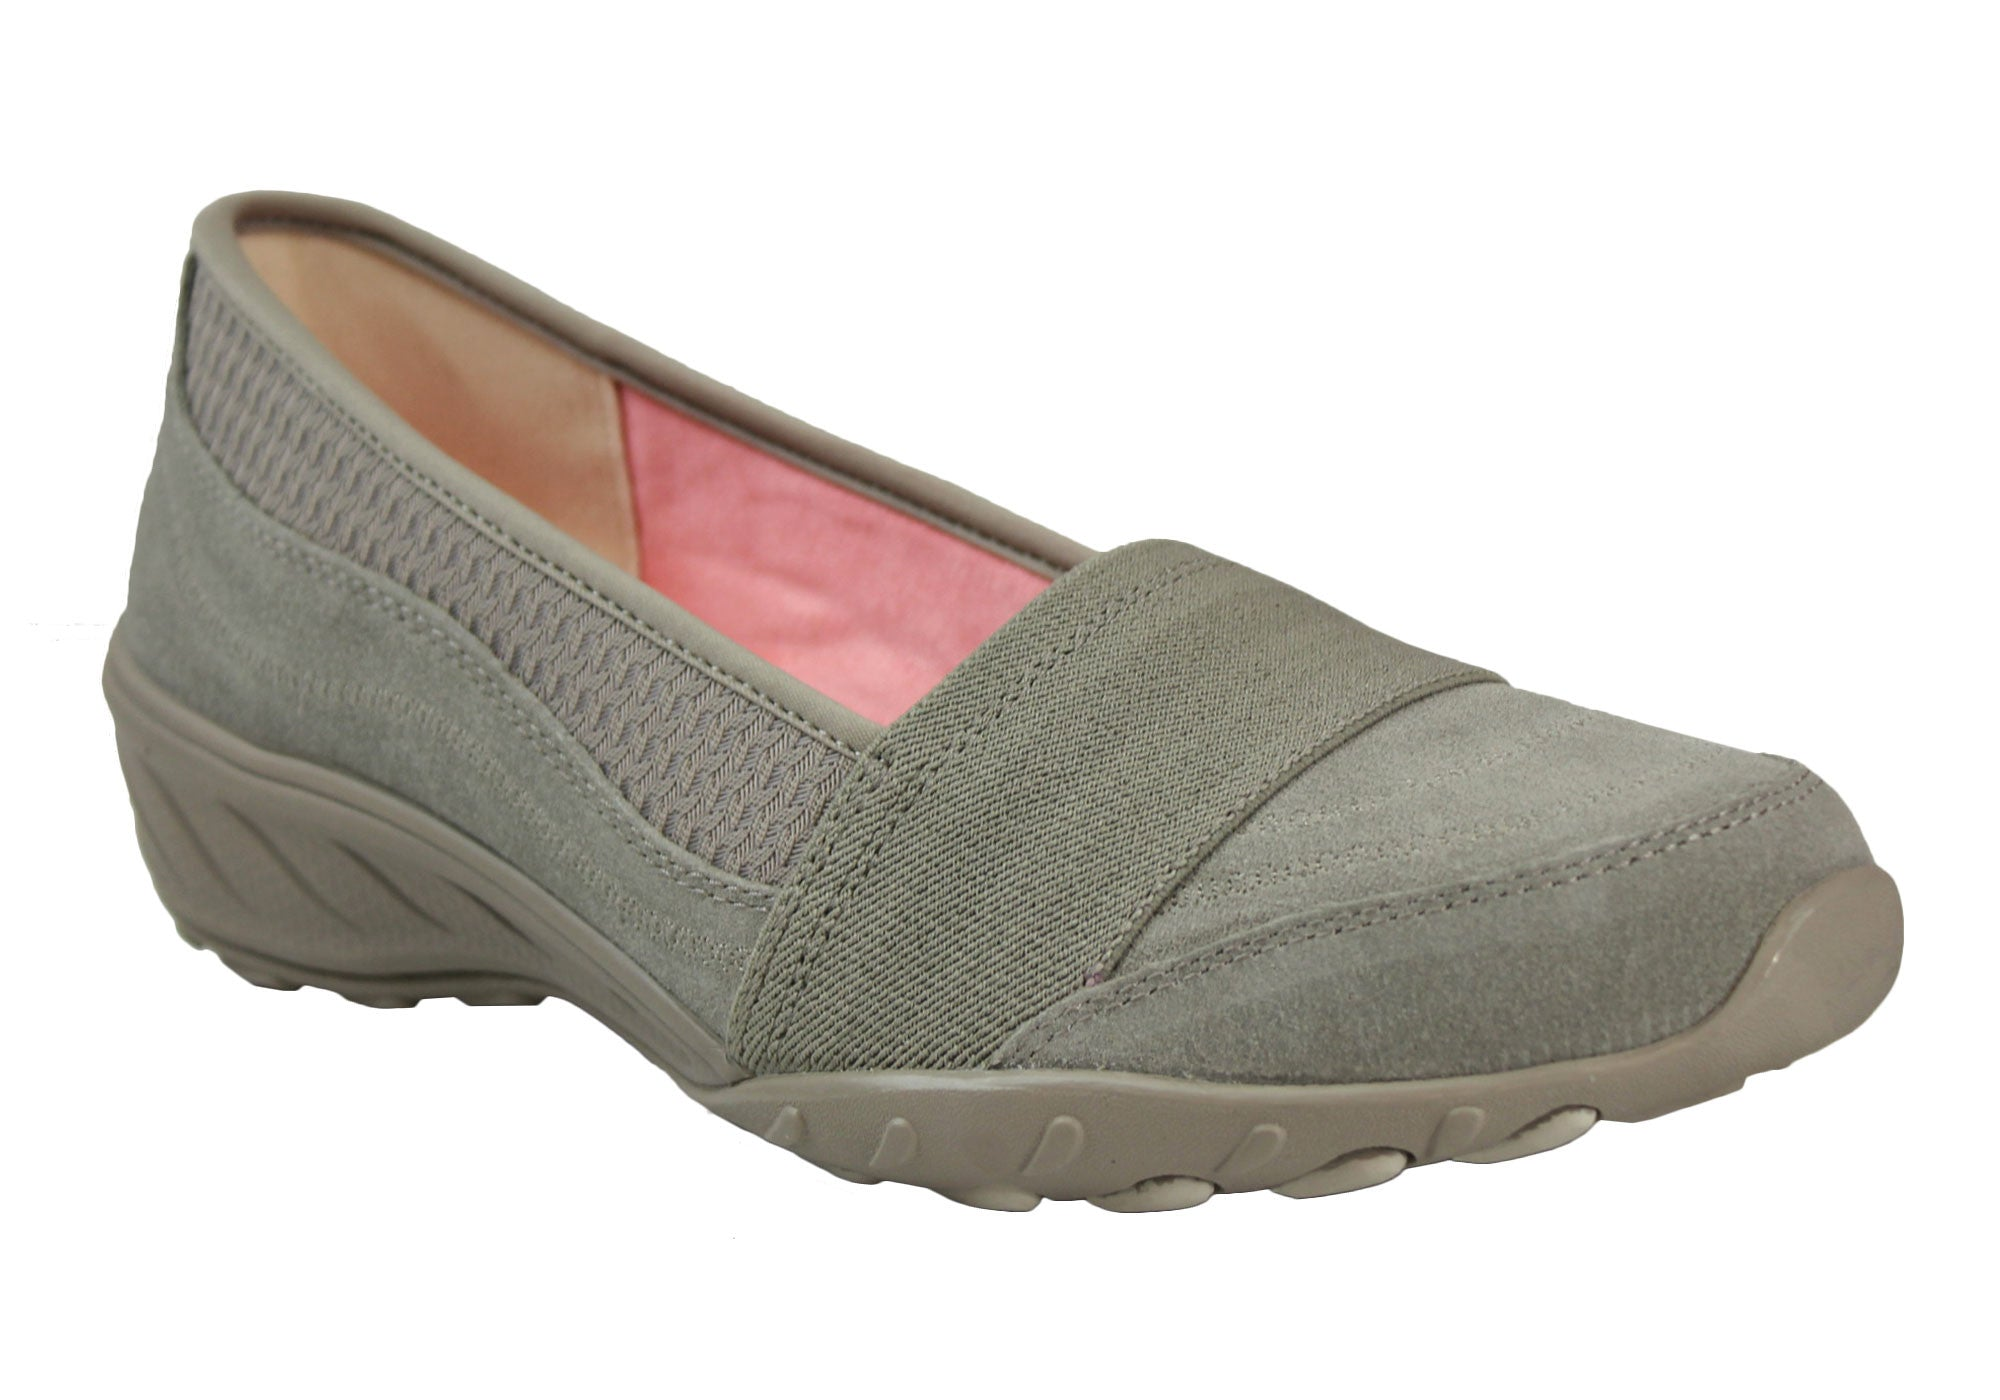 Skechers Savvy Womens Relaxed Fit Memory Foam Casual Shoes ...